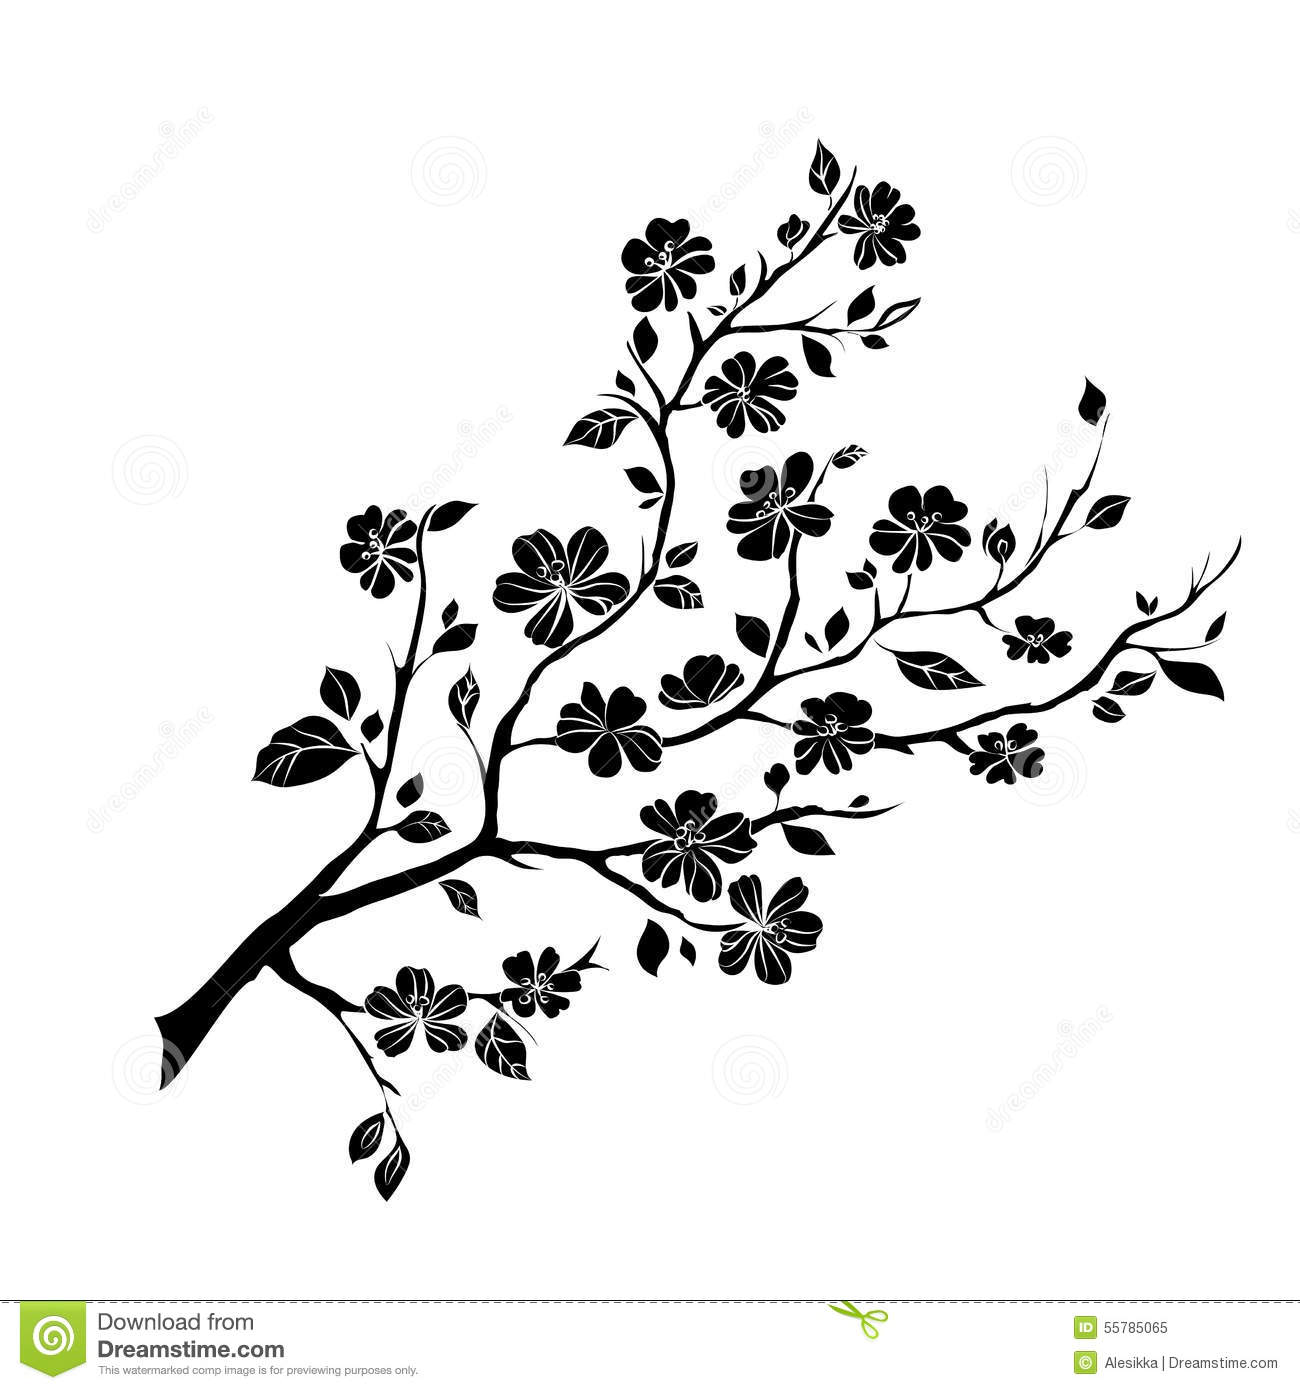 Wall Stickers Cherry Blossom Tree Twig Cherry Blossoms Stock Illustration Image 55785065